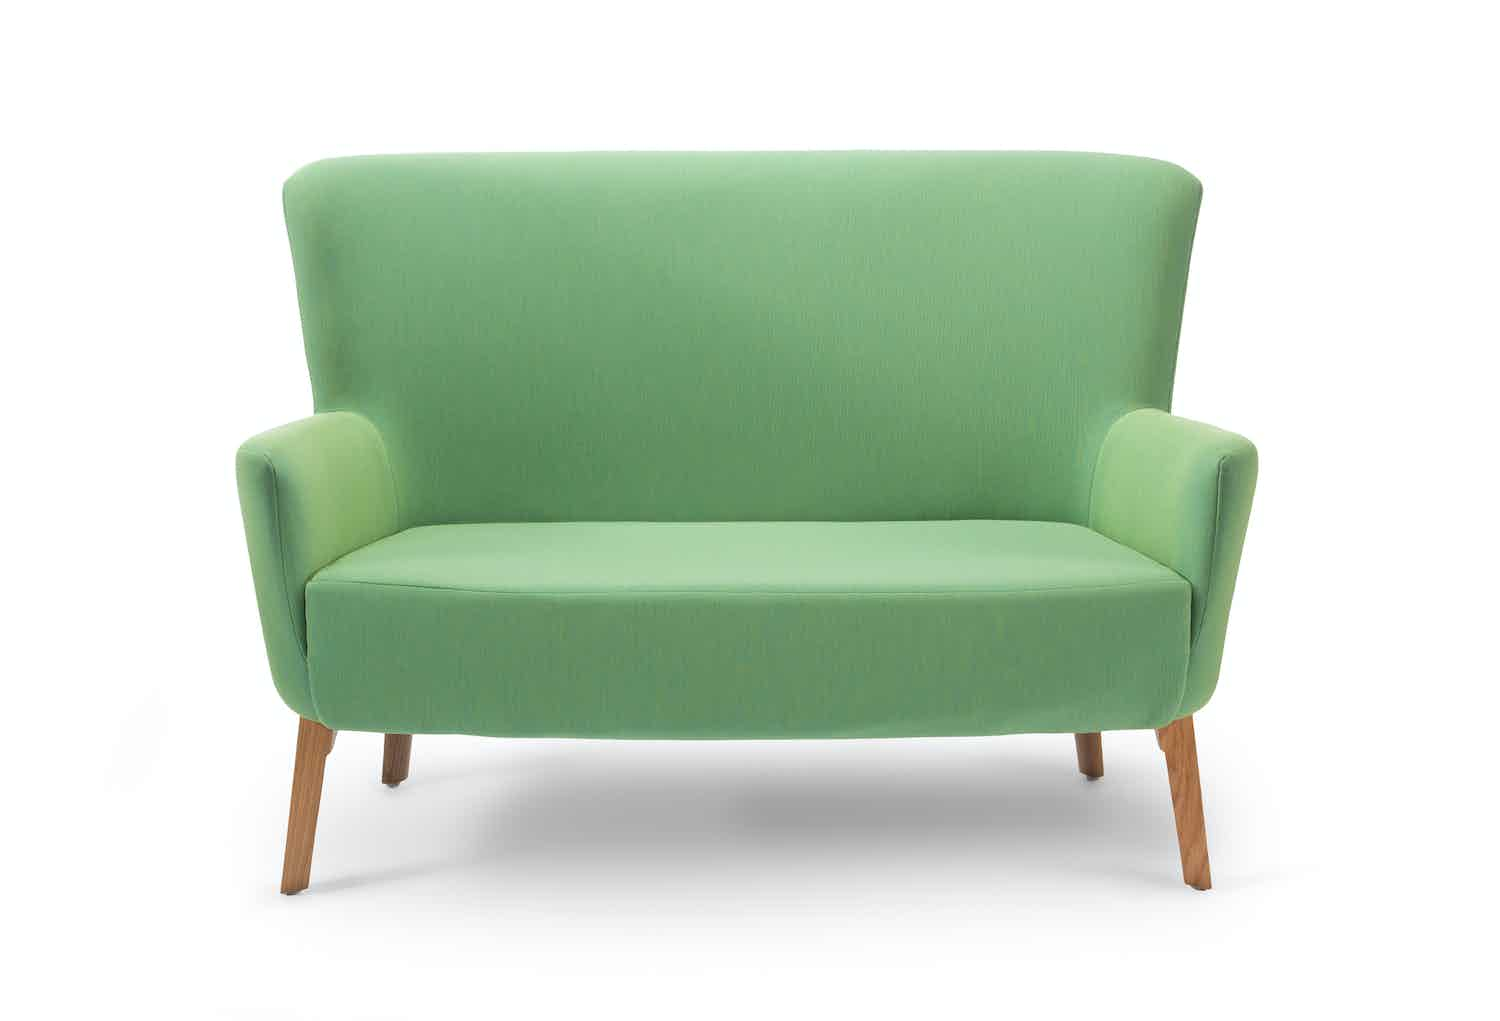 Deadgood-love-chair-sofa-double-love-haute-living